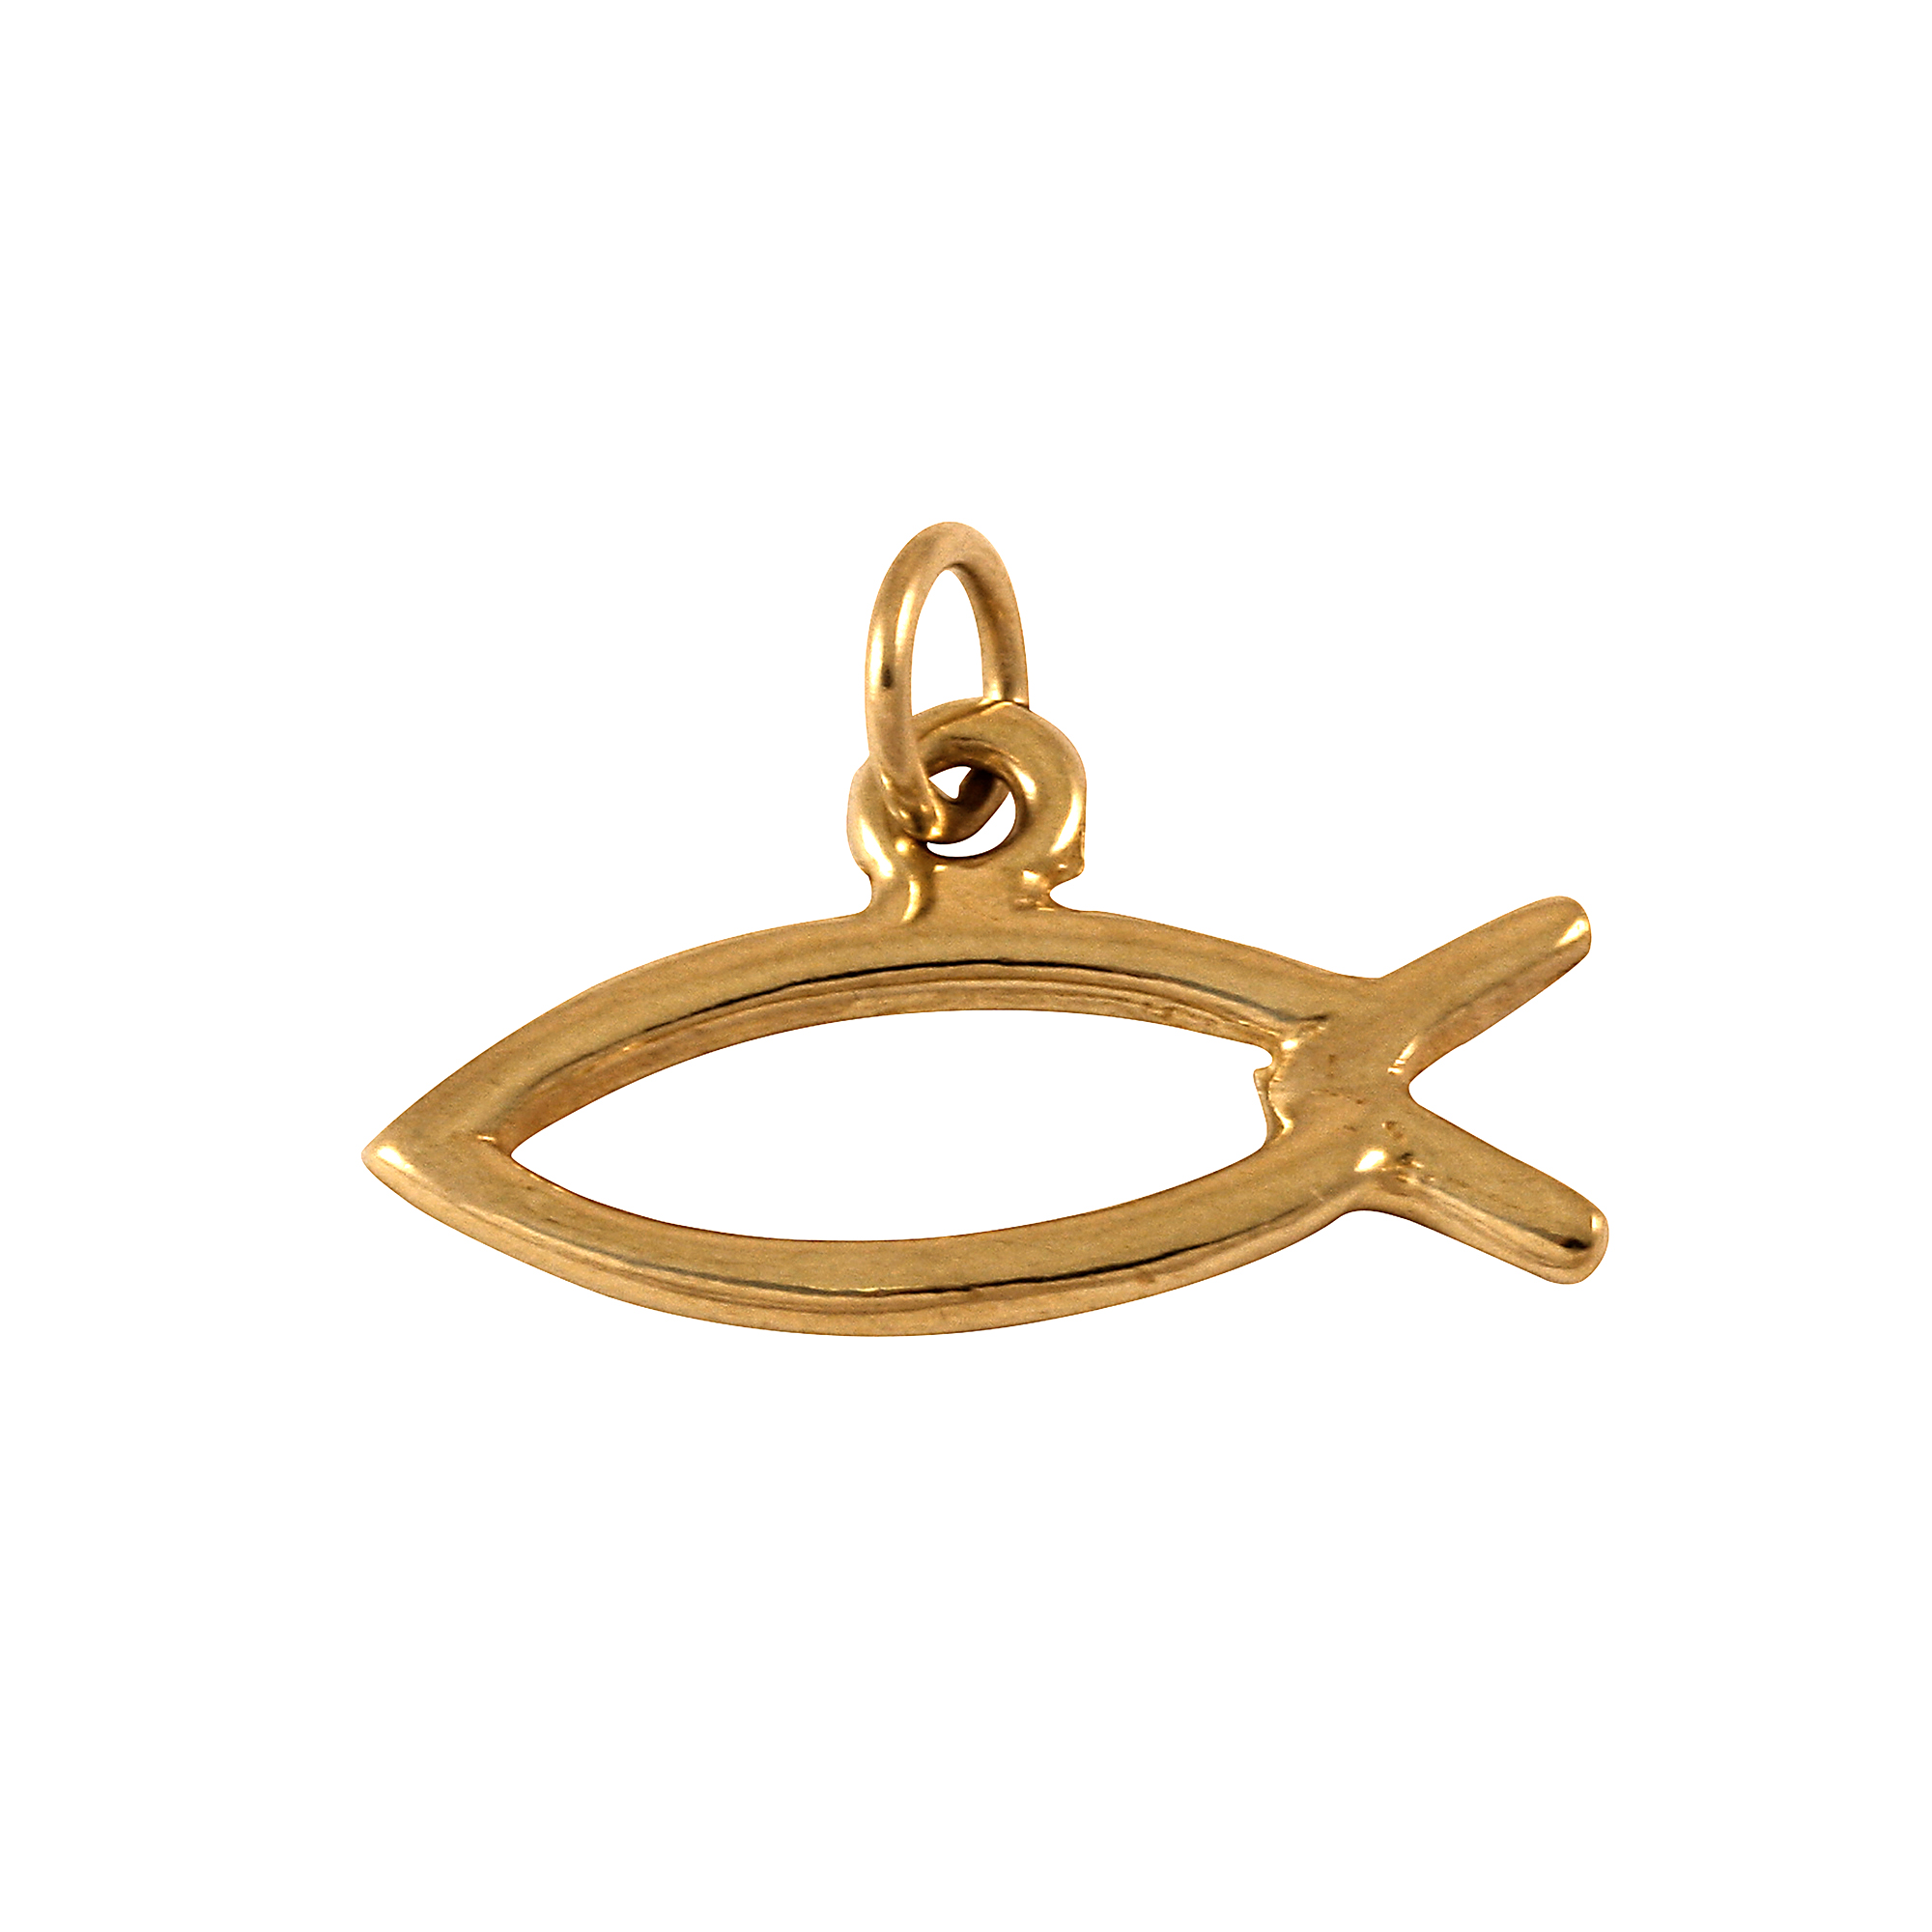 An image of 9ct Gold Fish Charm